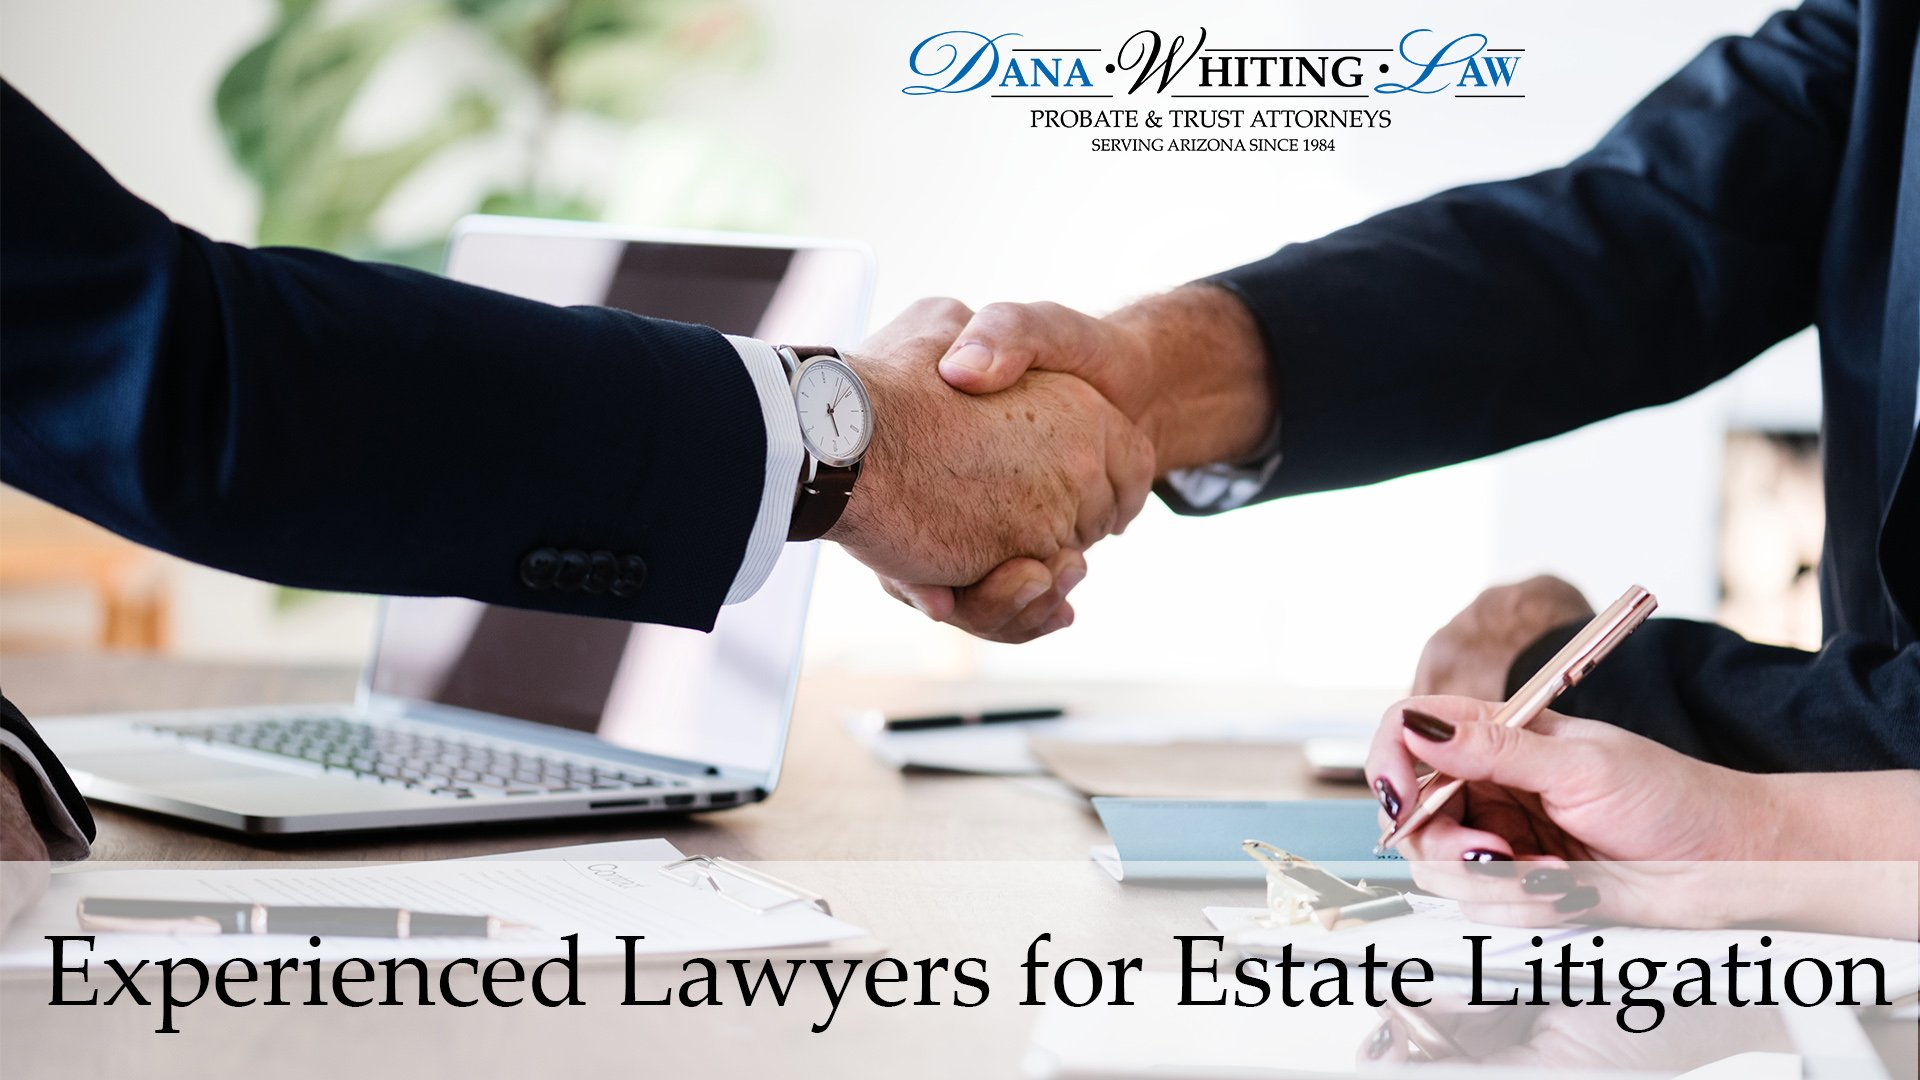 Experienced Lawyers for Estate Litigation